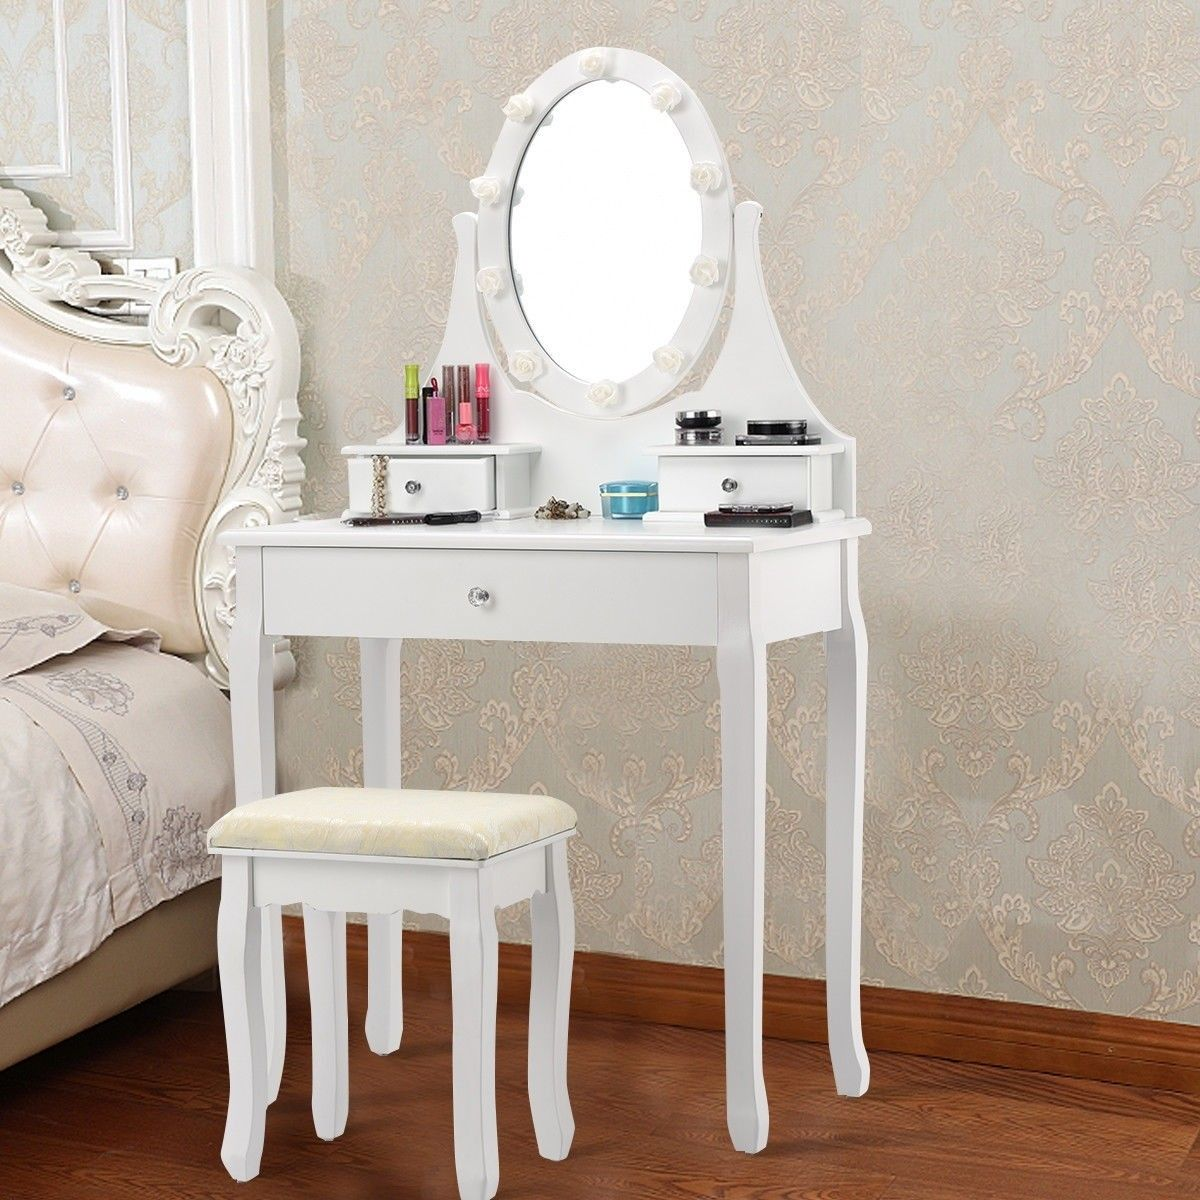 3 Drawers Lighted Mirror Vanity Dressing Table Stool Set Makeup Dressing Table Drawer Lights Vanity Set With Mirror